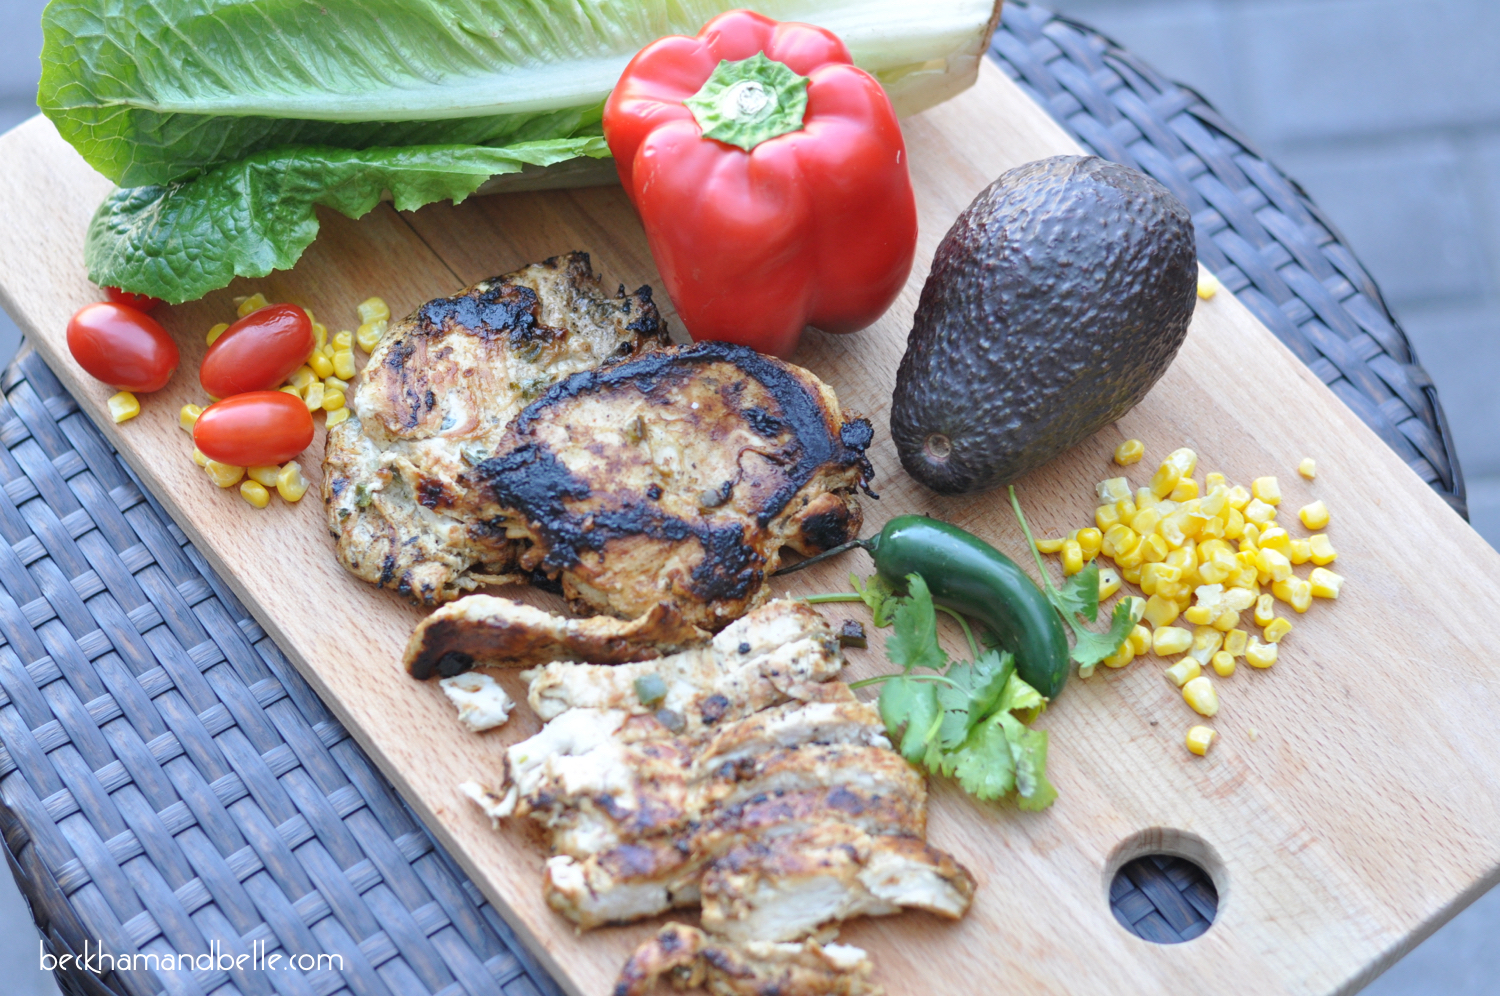 The Best Marinade - Jalepeno, Cilantro and Lime Chicken Marinade